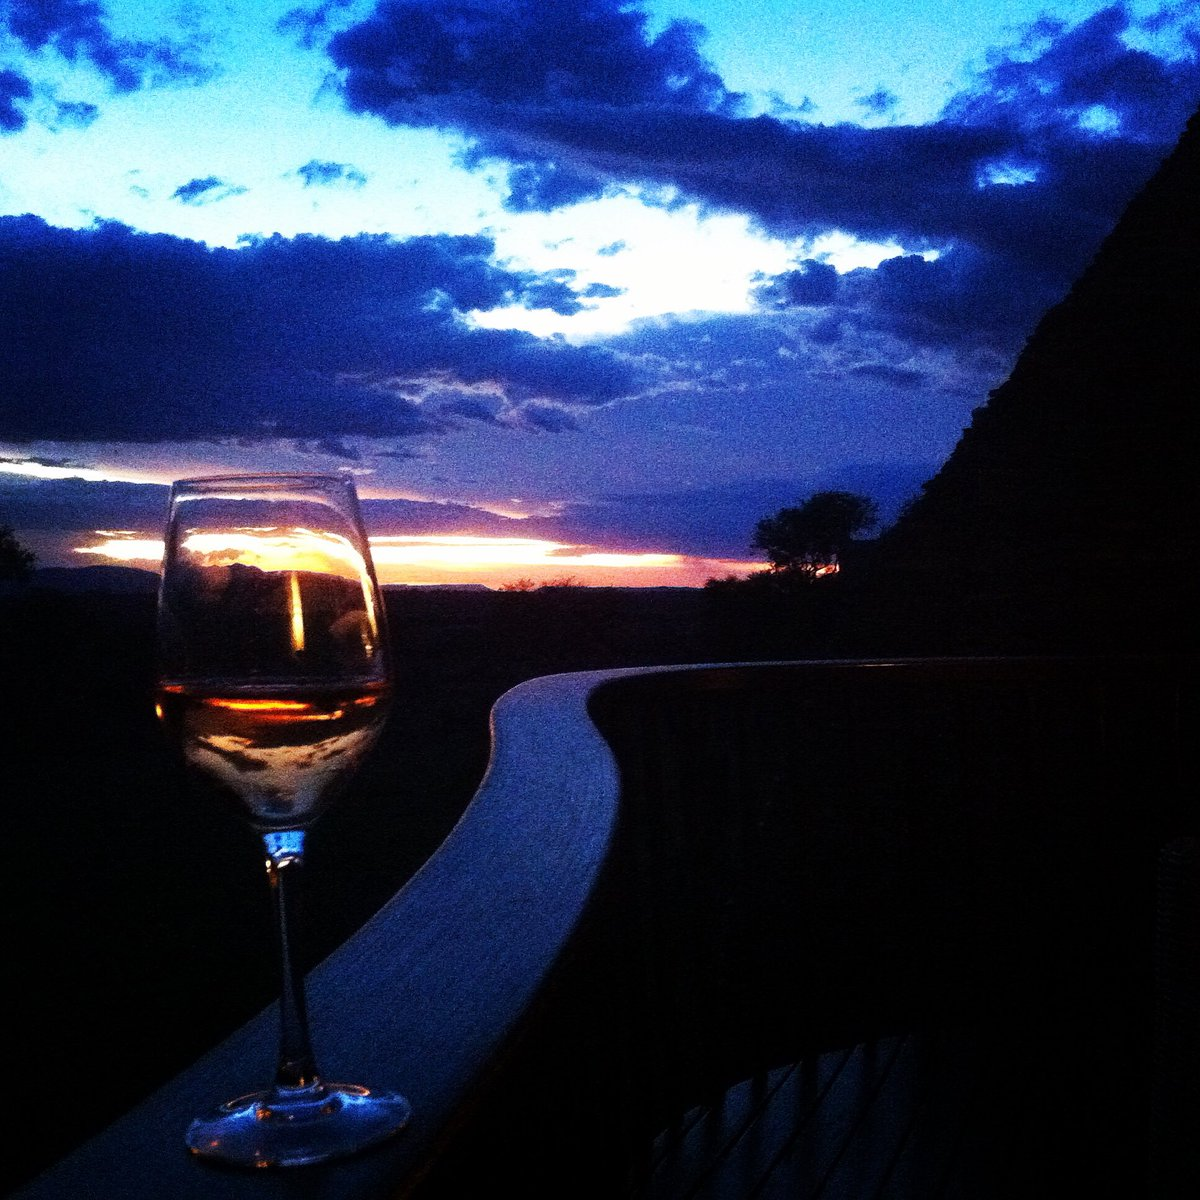 Sipping wine on my private balcony at @FSSerengeti to the sound of wildebeest and hyenas. #travchat https://t.co/g9hwUM8tEf